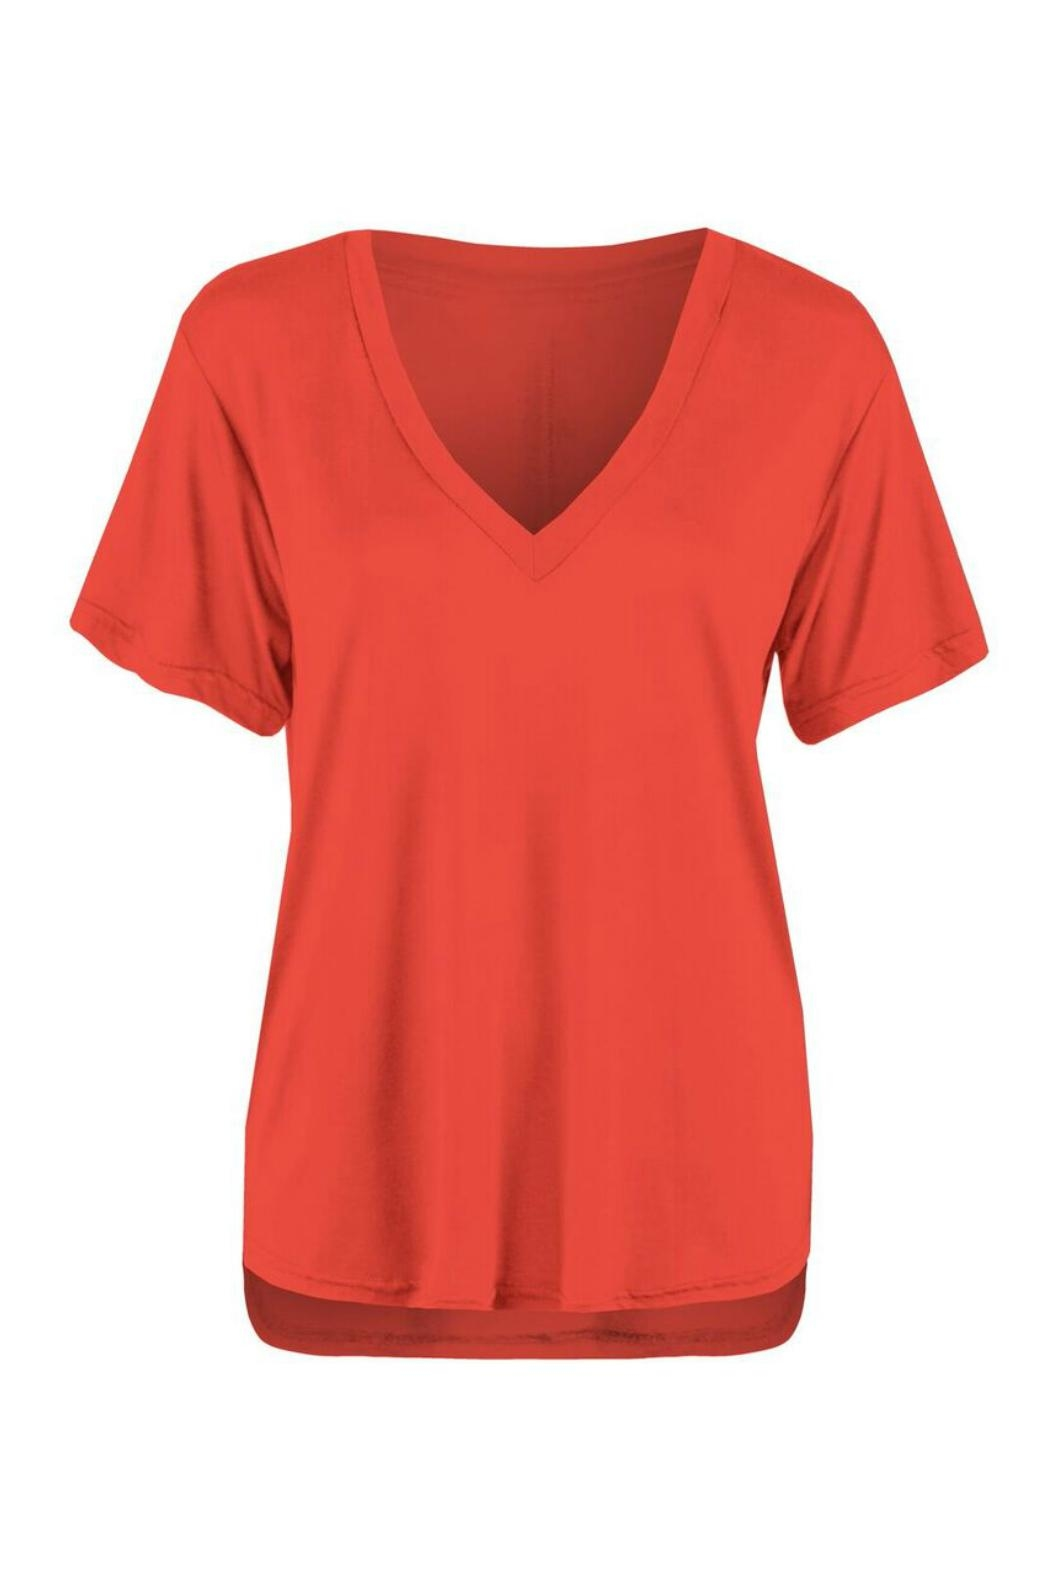 Dex V Neck Red Shirt - Main Image